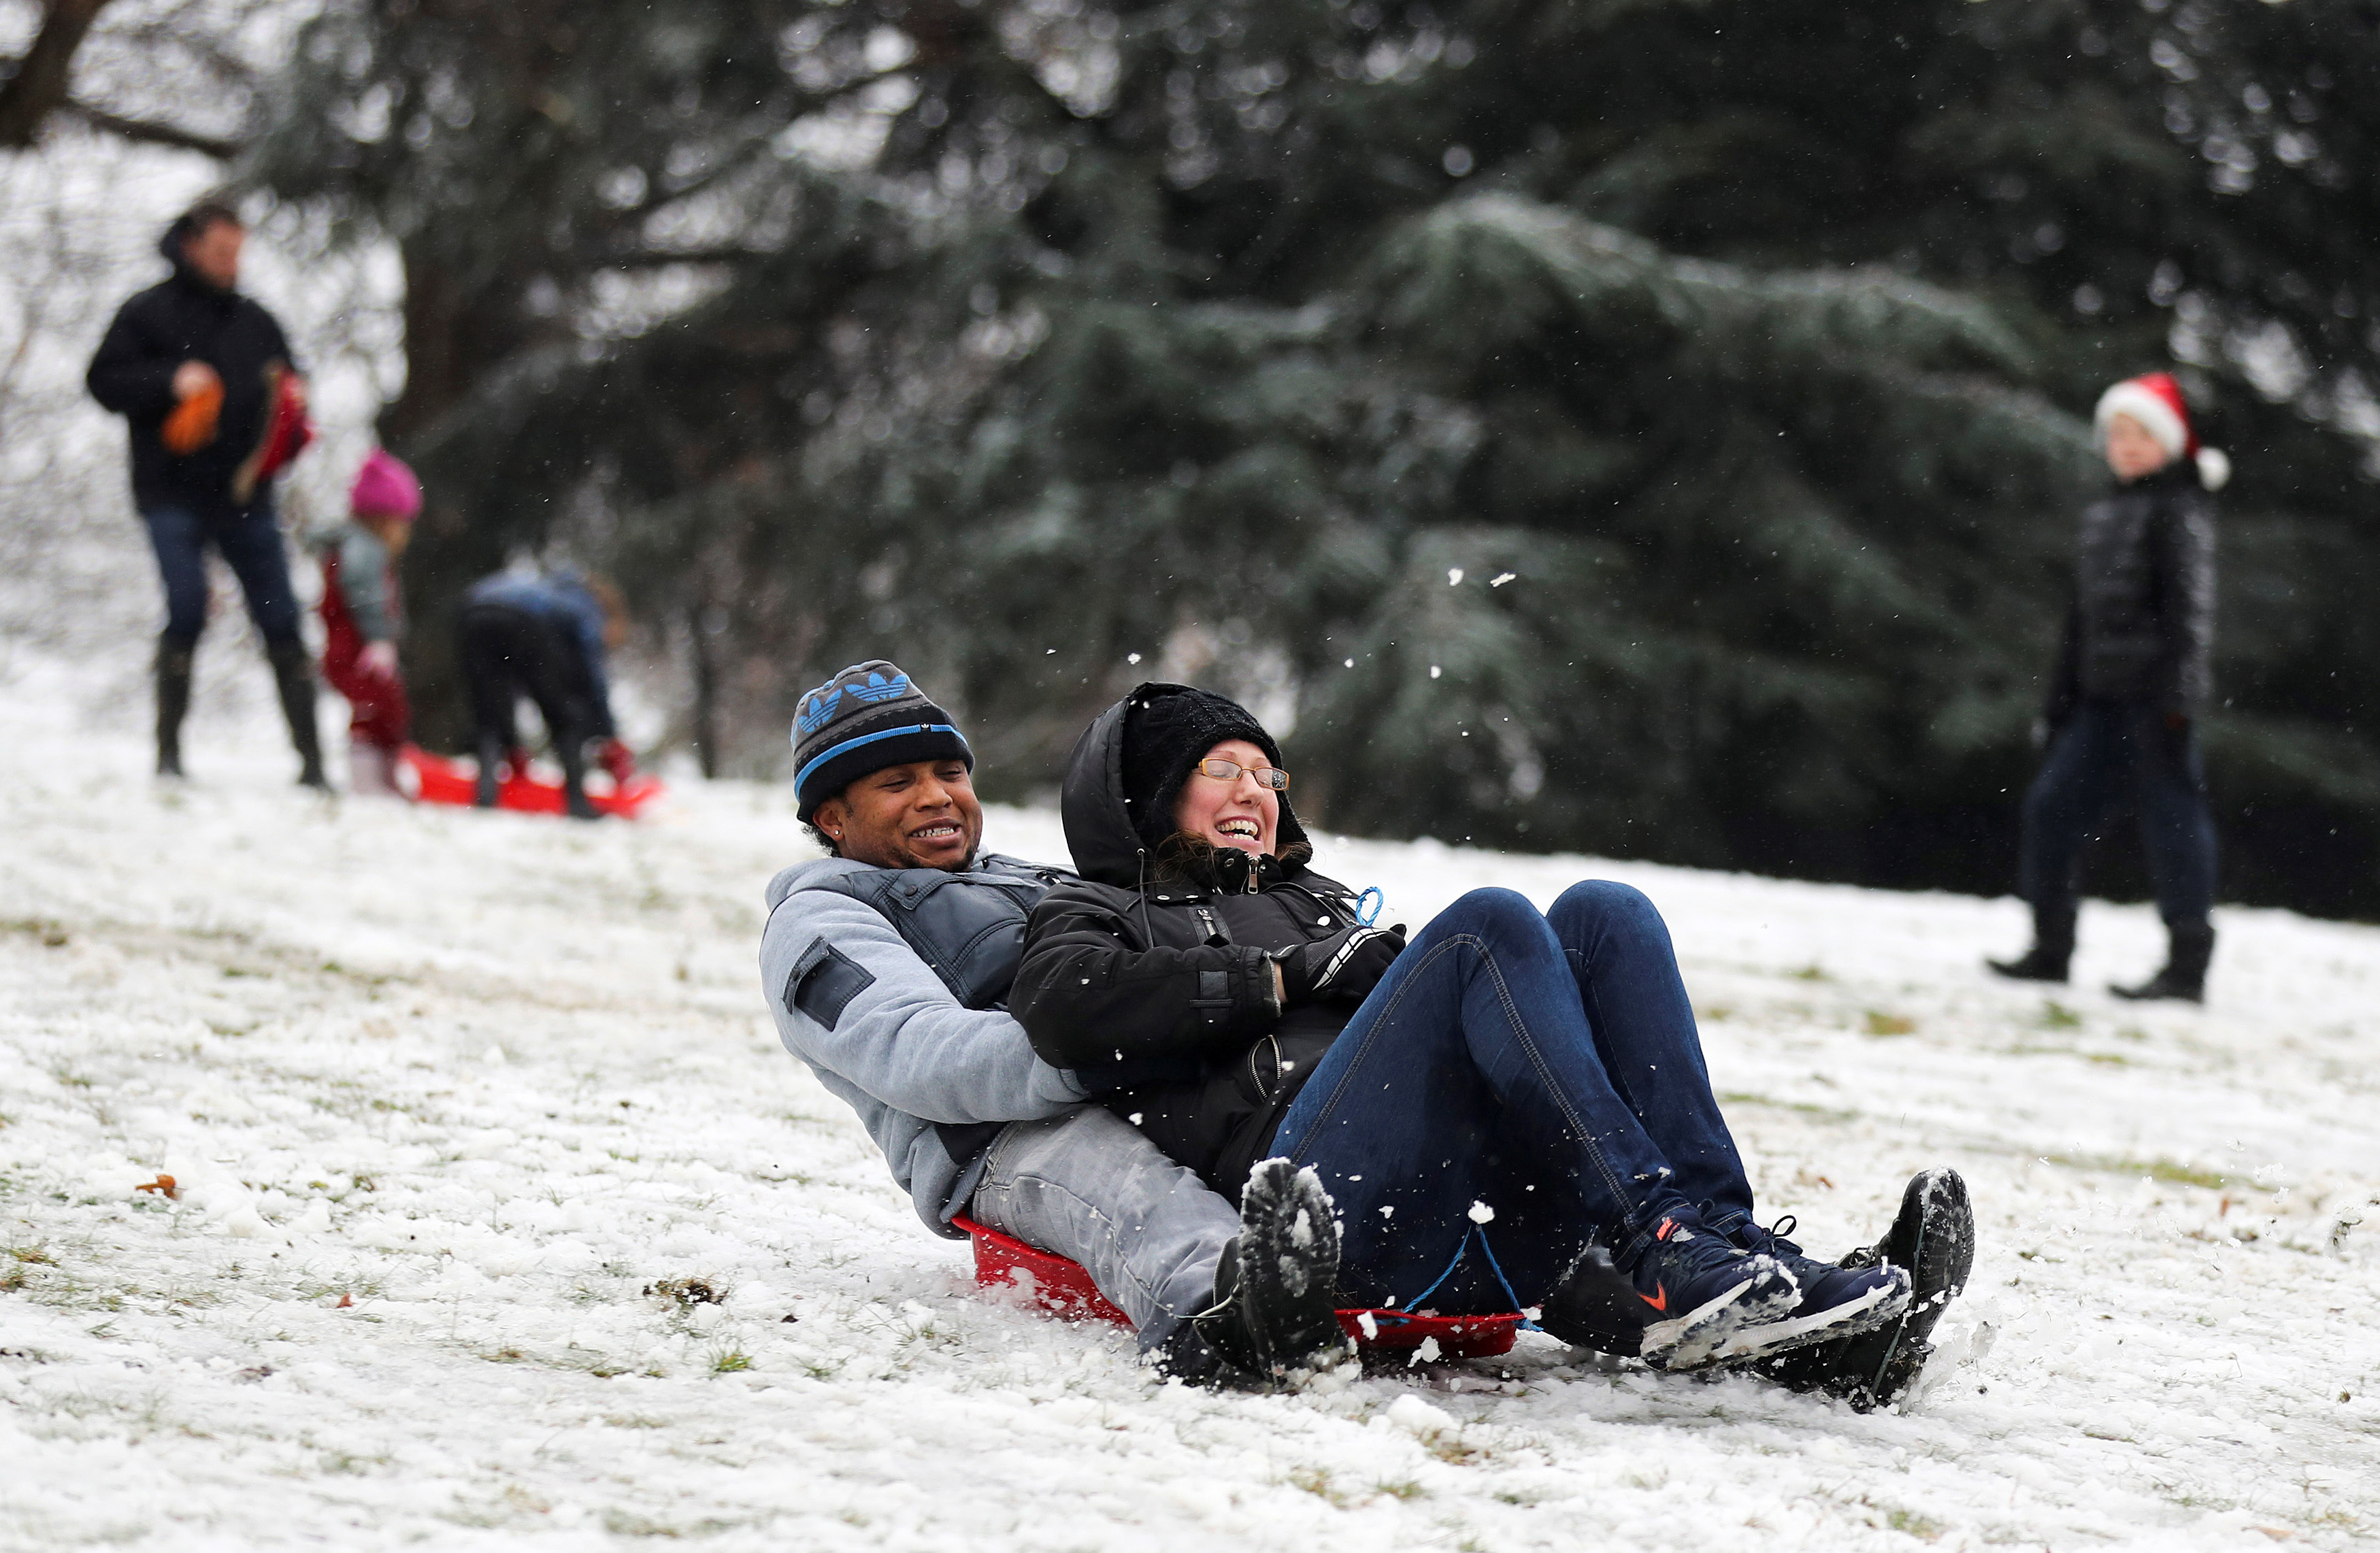 People sled down a hill in the snow in Greenwich Park, London, Britain December 10, 2017. REUTERS/Simon Dawson - RC1CC6D95220